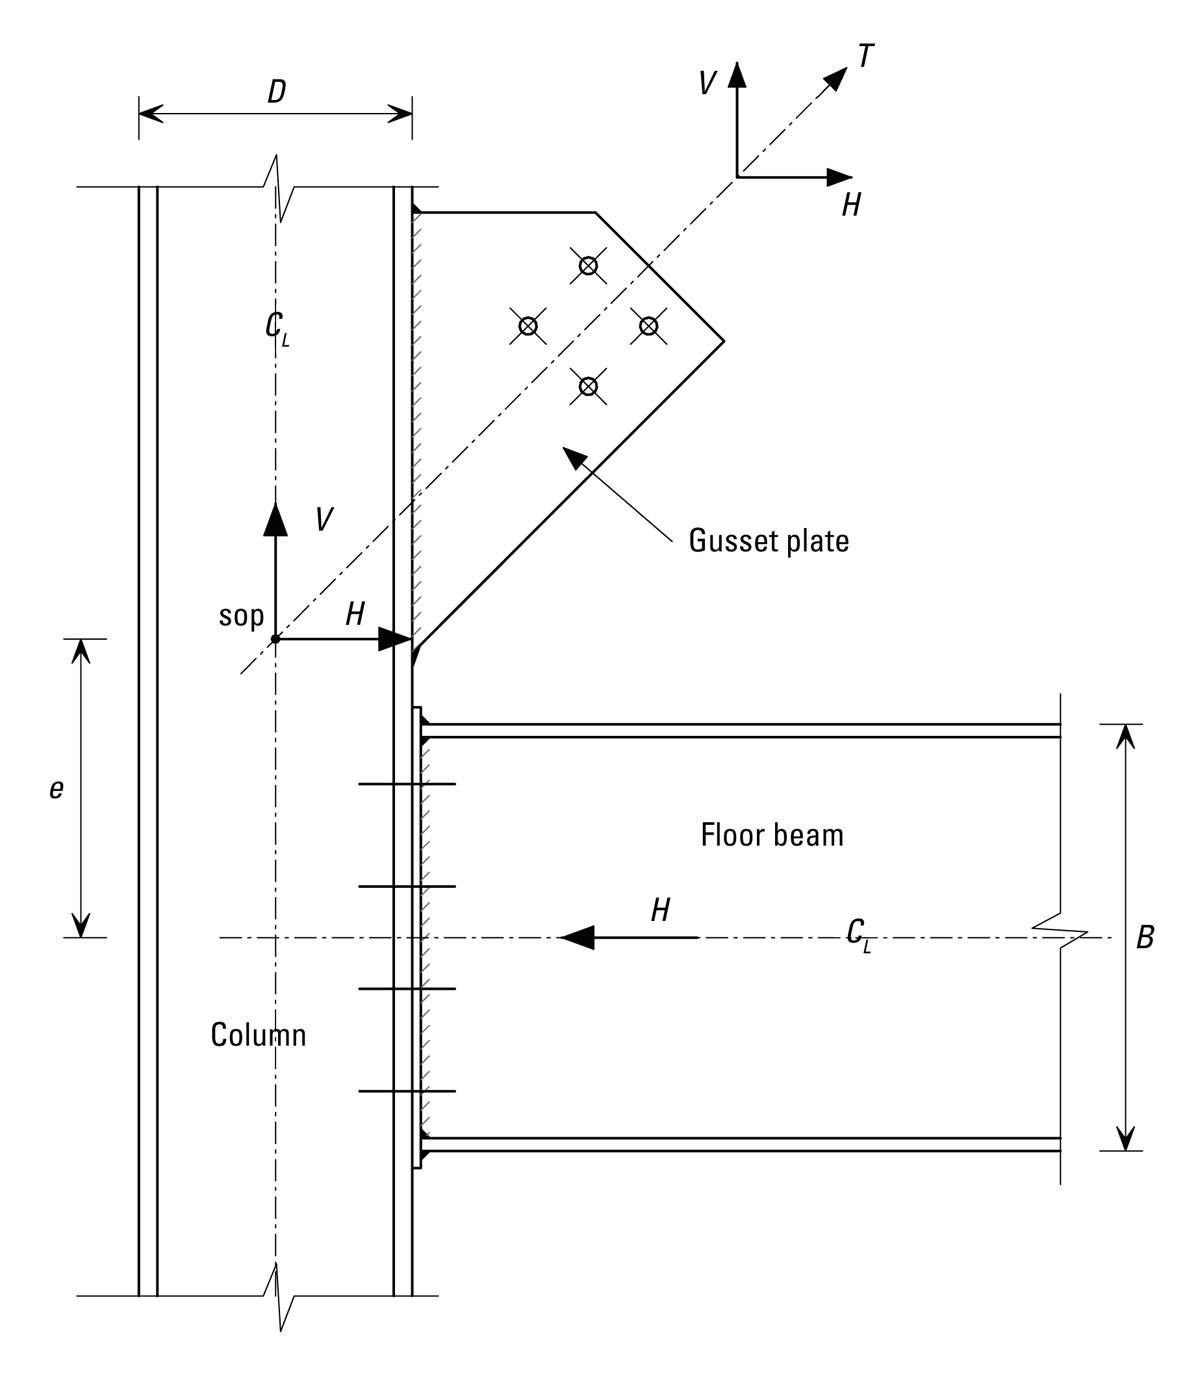 hight resolution of figure 2 bracing connections made directly to column